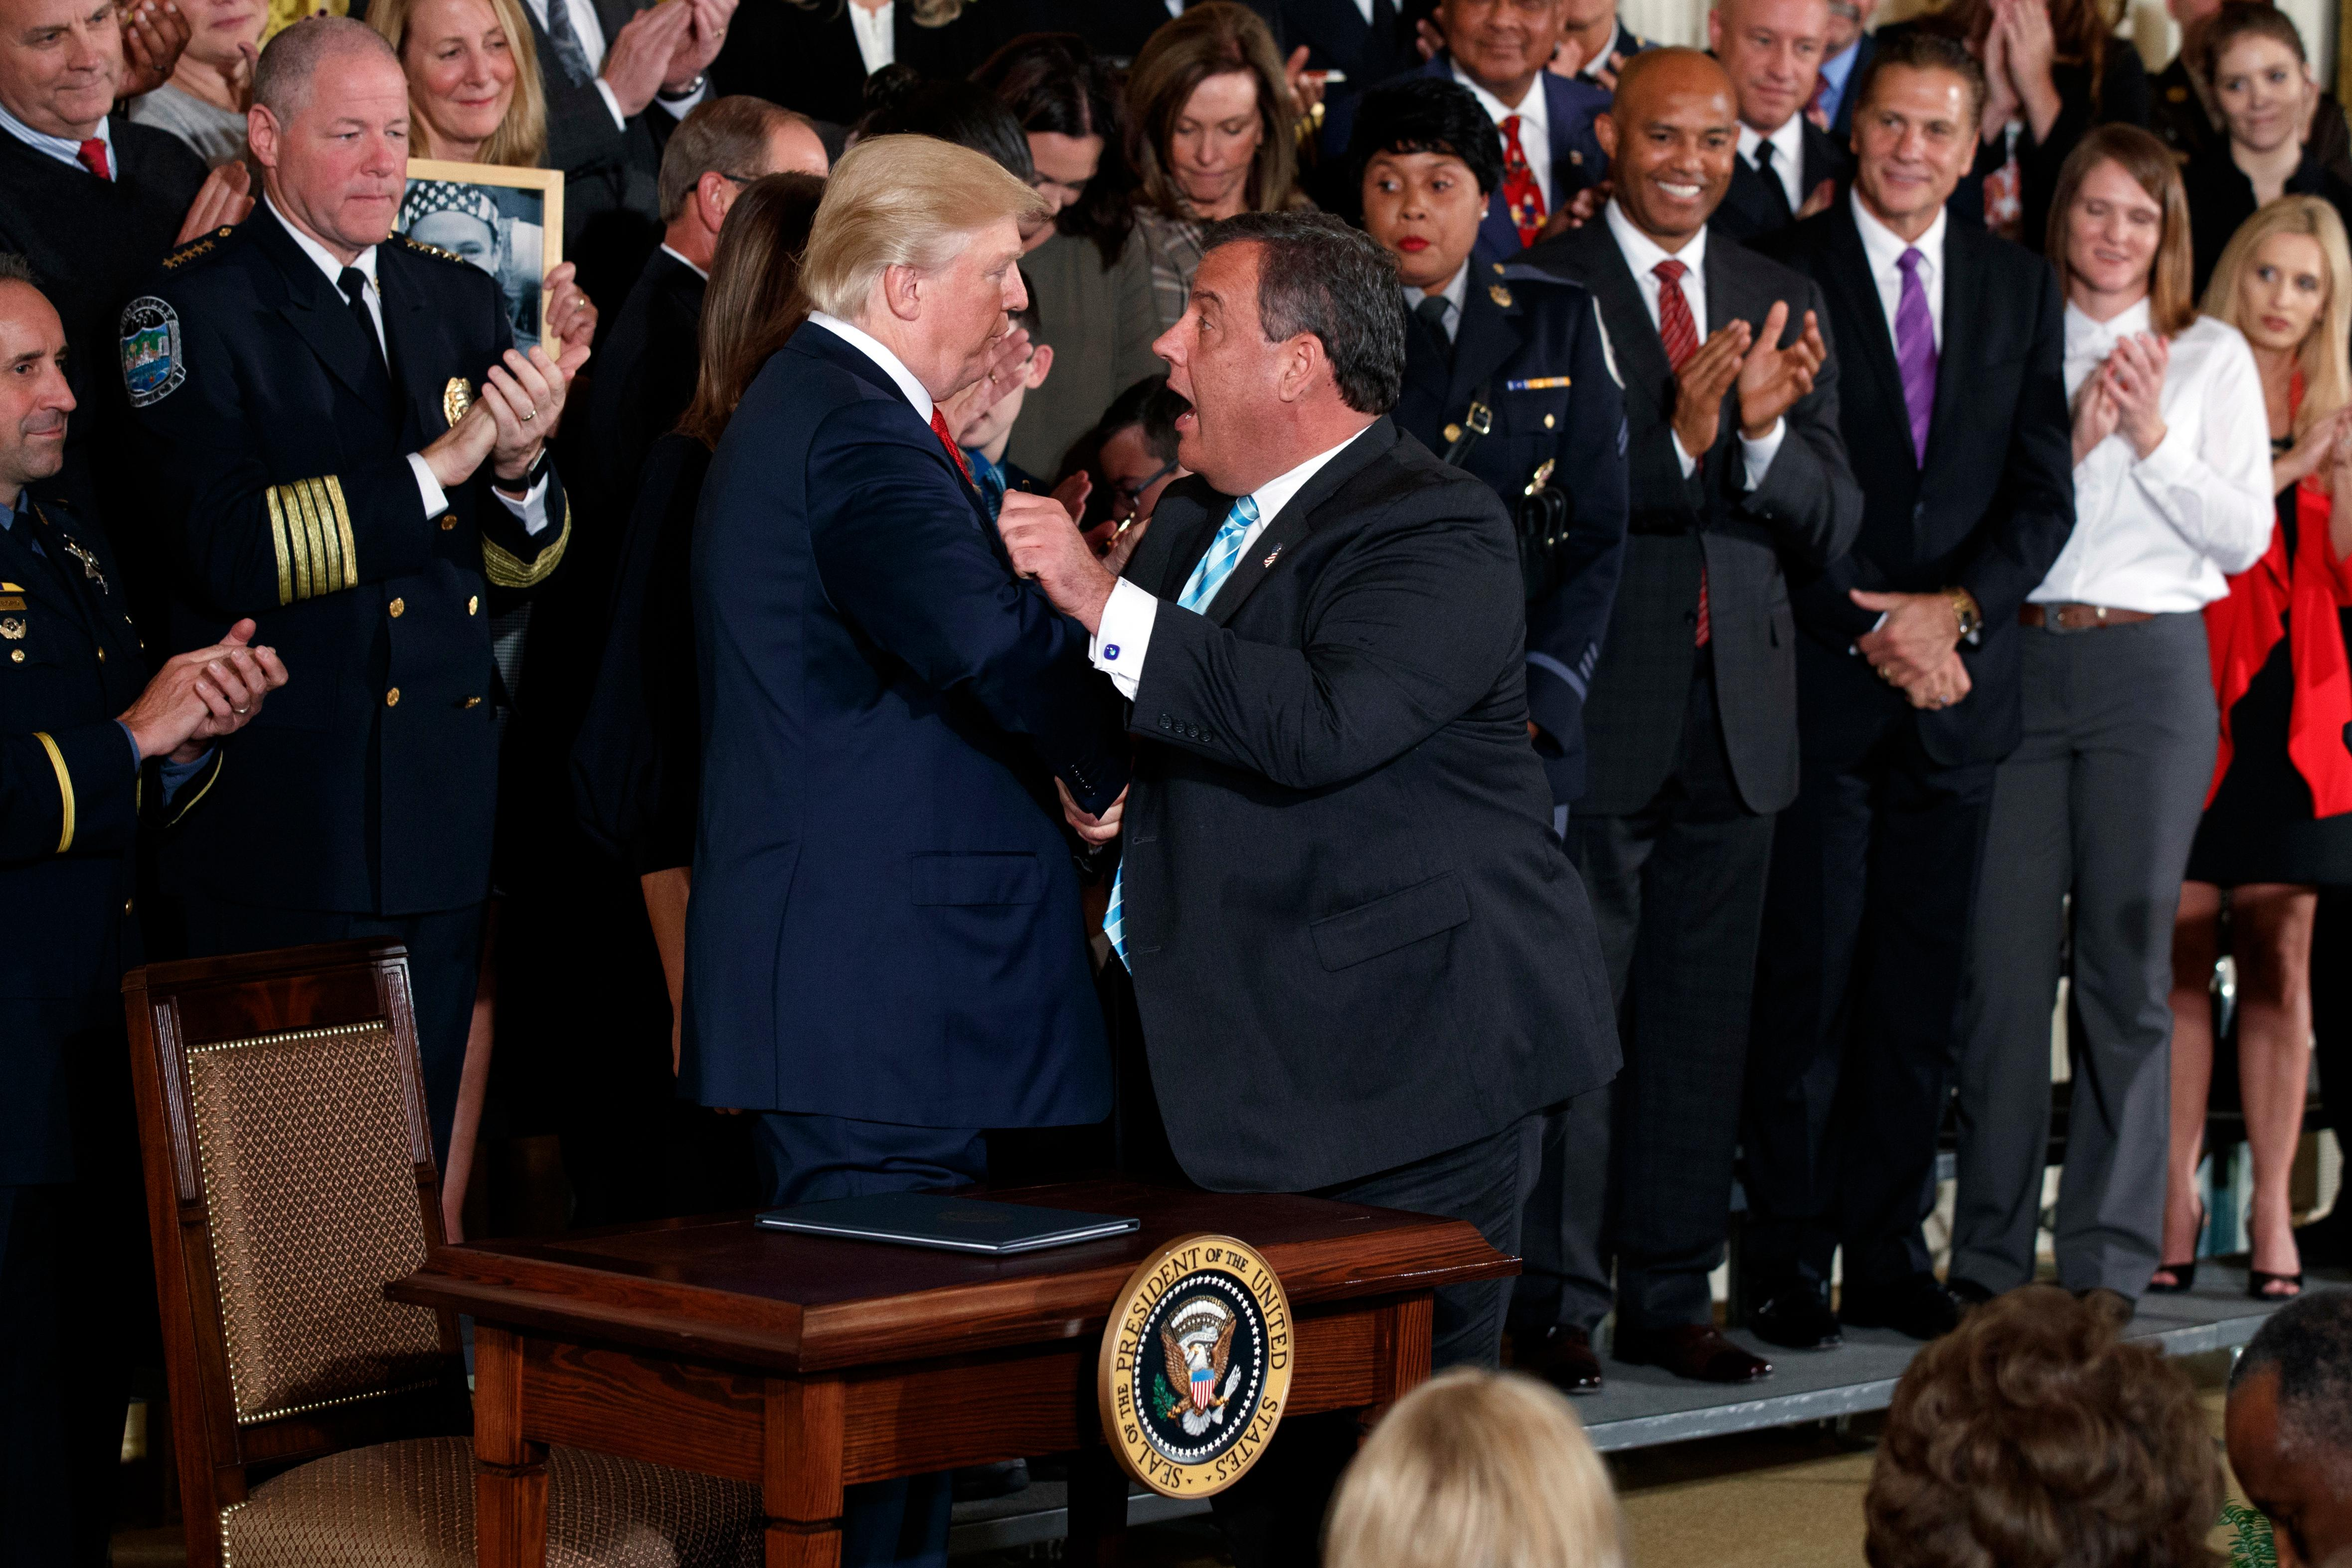 President Donald Trump shakes hands with New Jersey Gov. Chris Christie after signing a presidential memorandum to declare the opioid crisis a national public health emergency in the East Room of the White House, Thursday, Oct. 26, 2017, in Washington. (AP Photo/Evan Vucci)